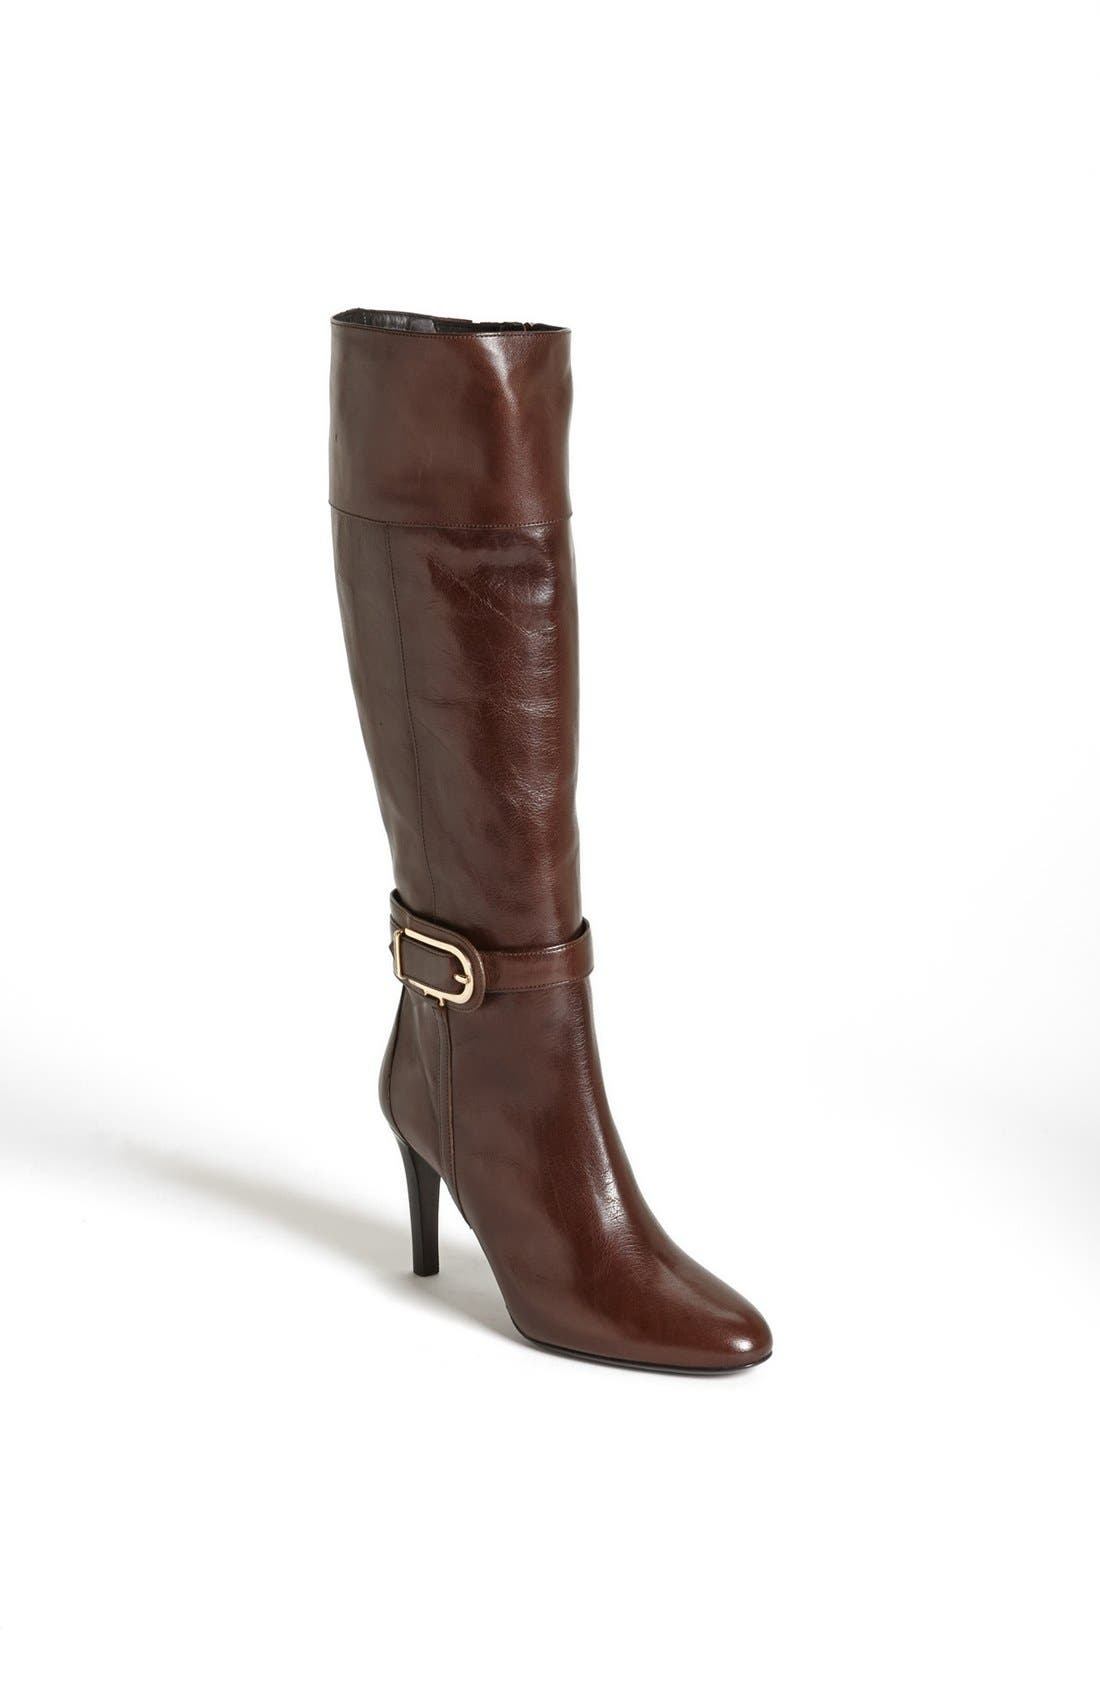 Alternate Image 1 Selected - Burberry 'Monteagle' Tall Boot